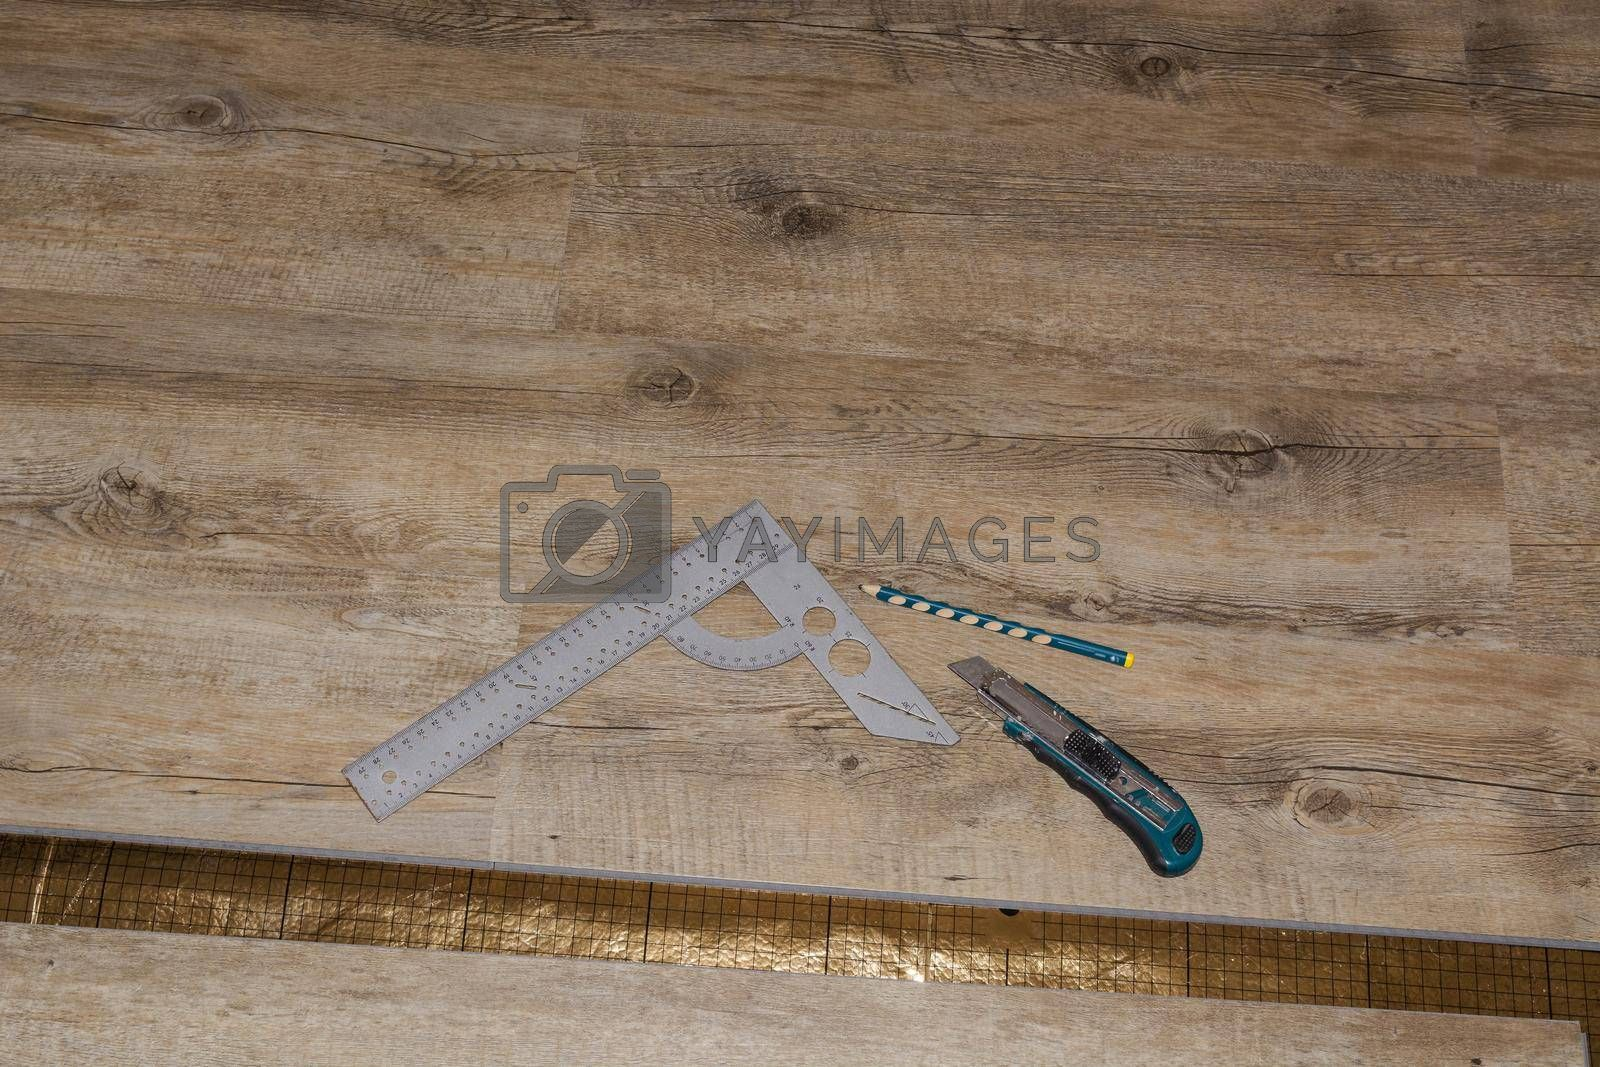 Royalty free image of Wooden floor - oak parquet synthetic laminate. by JFsPic